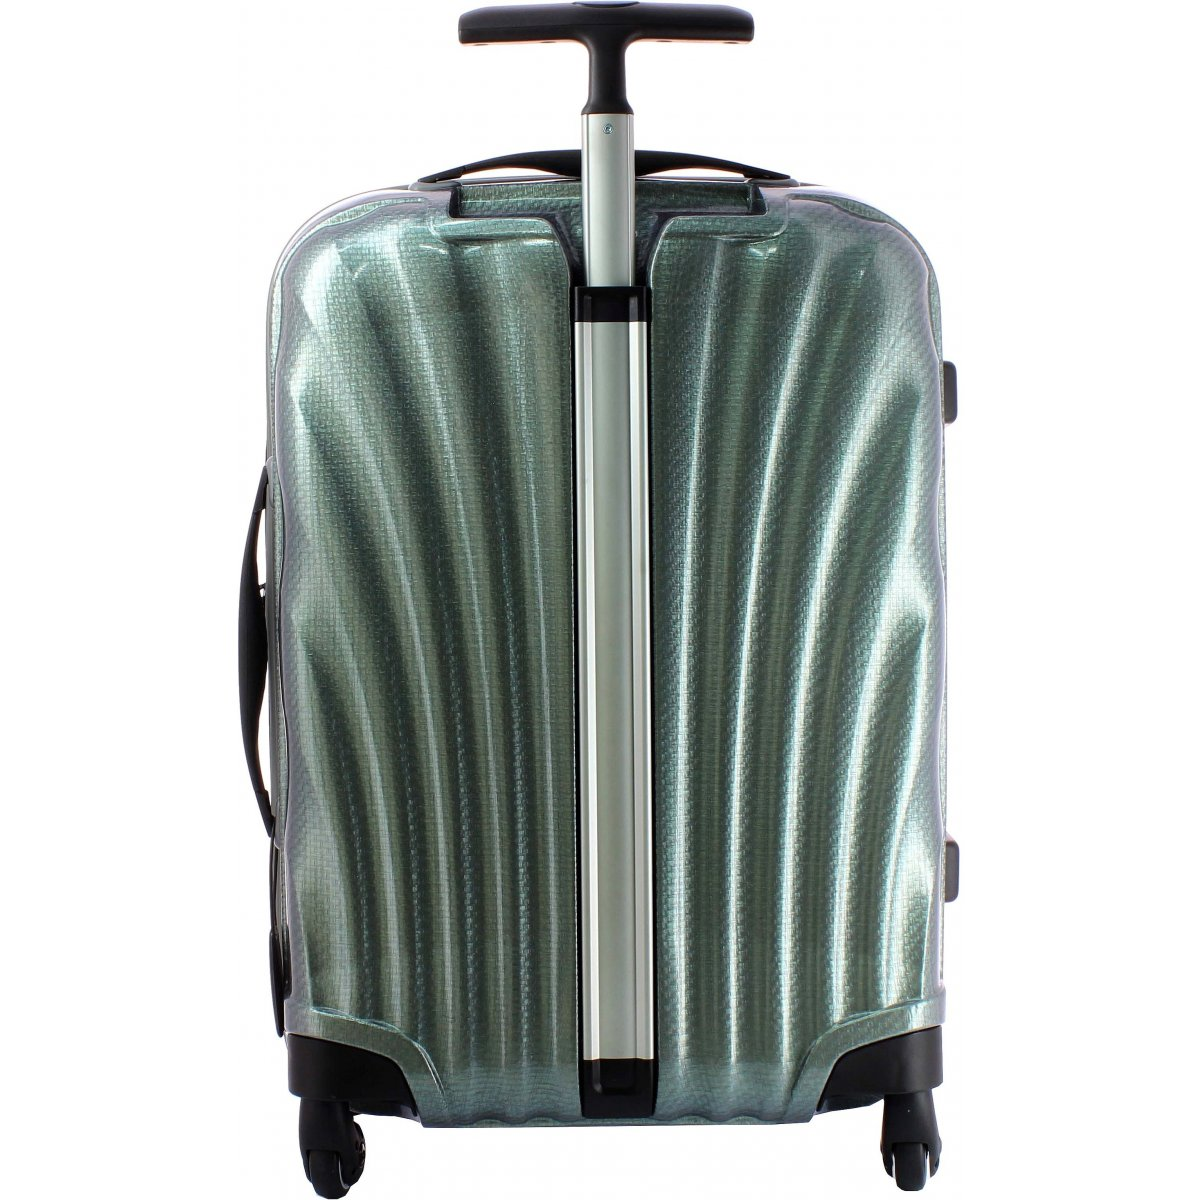 valise cabine samsonite cosmolite spinner 55 cm cosmolite49 couleur principale vert. Black Bedroom Furniture Sets. Home Design Ideas